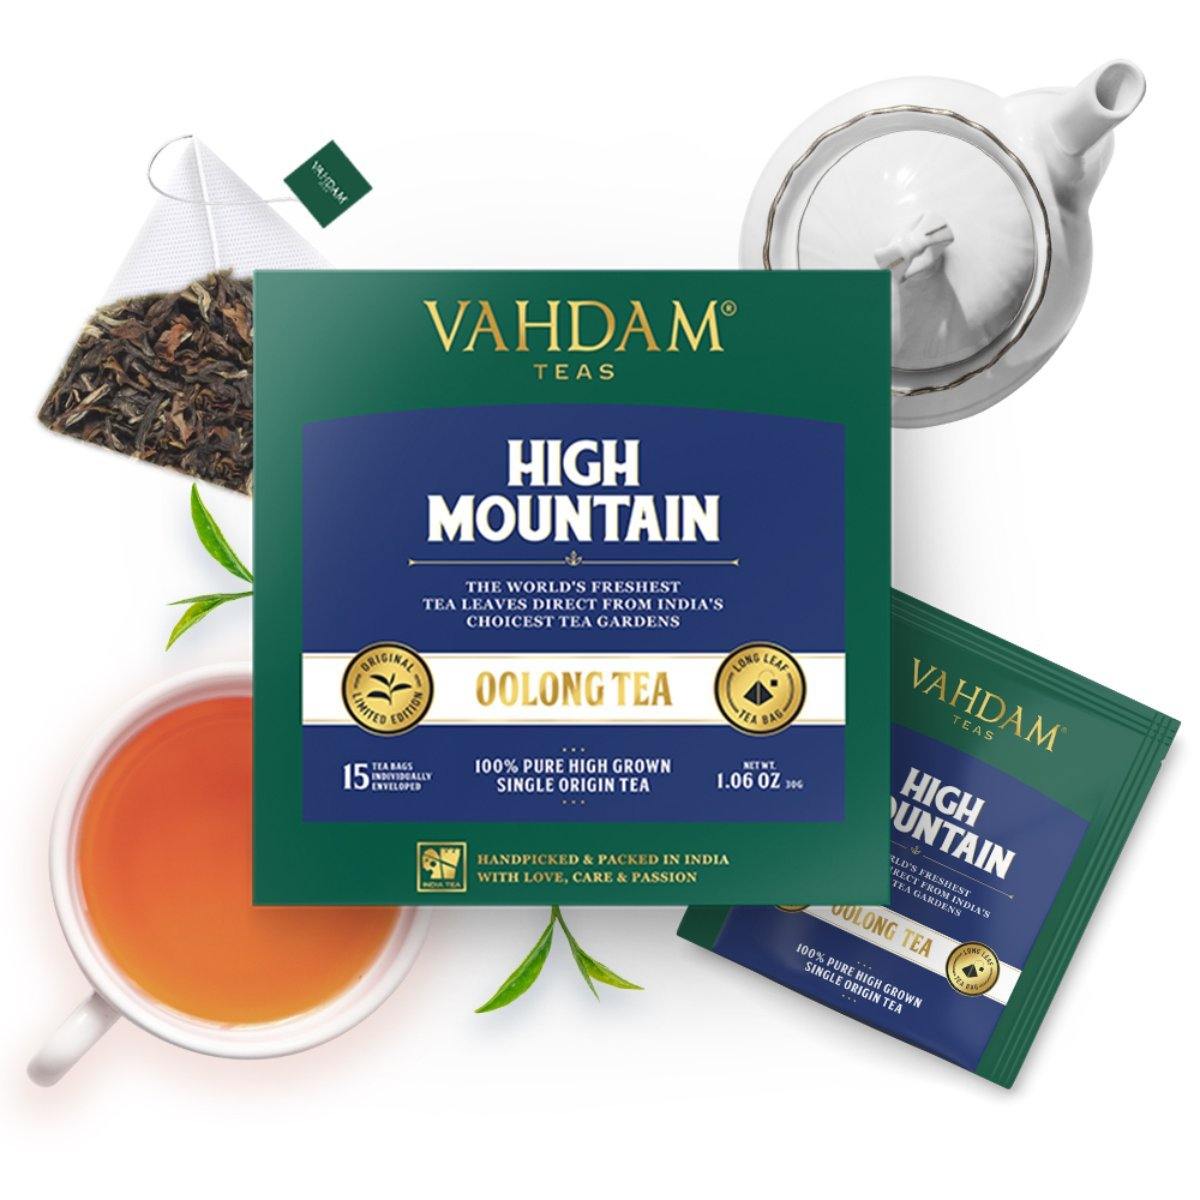 High Mountain Oolong Tea (15 Pyramid Tea Bags)